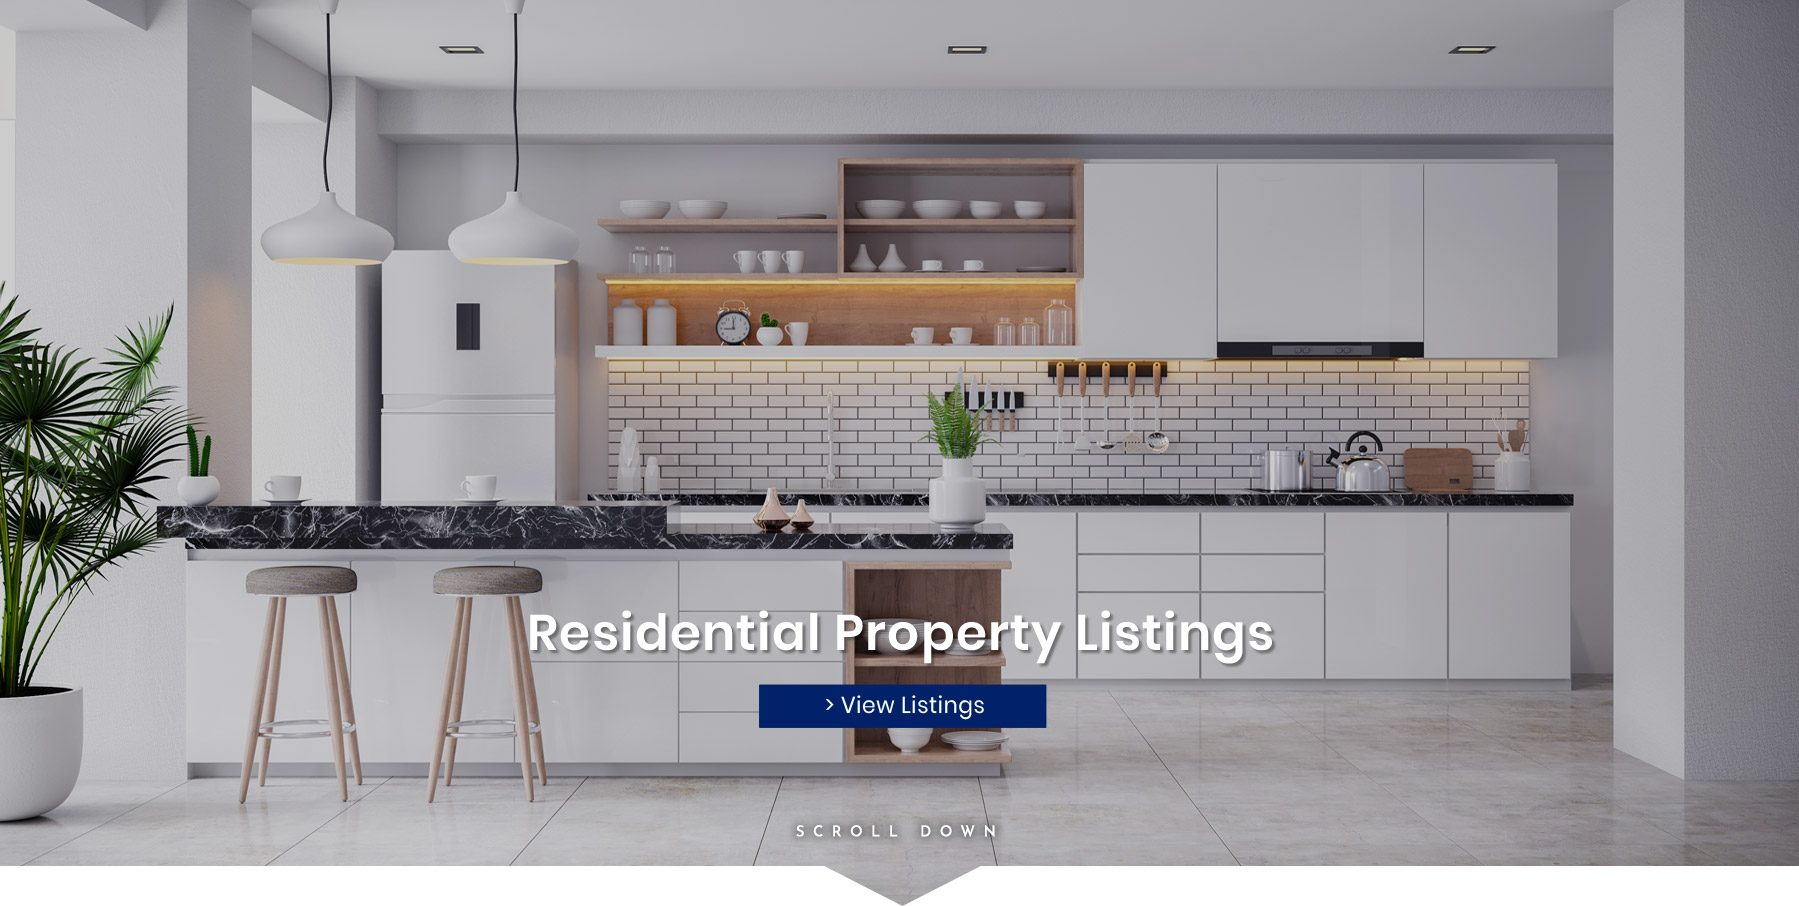 Residential Property Listings